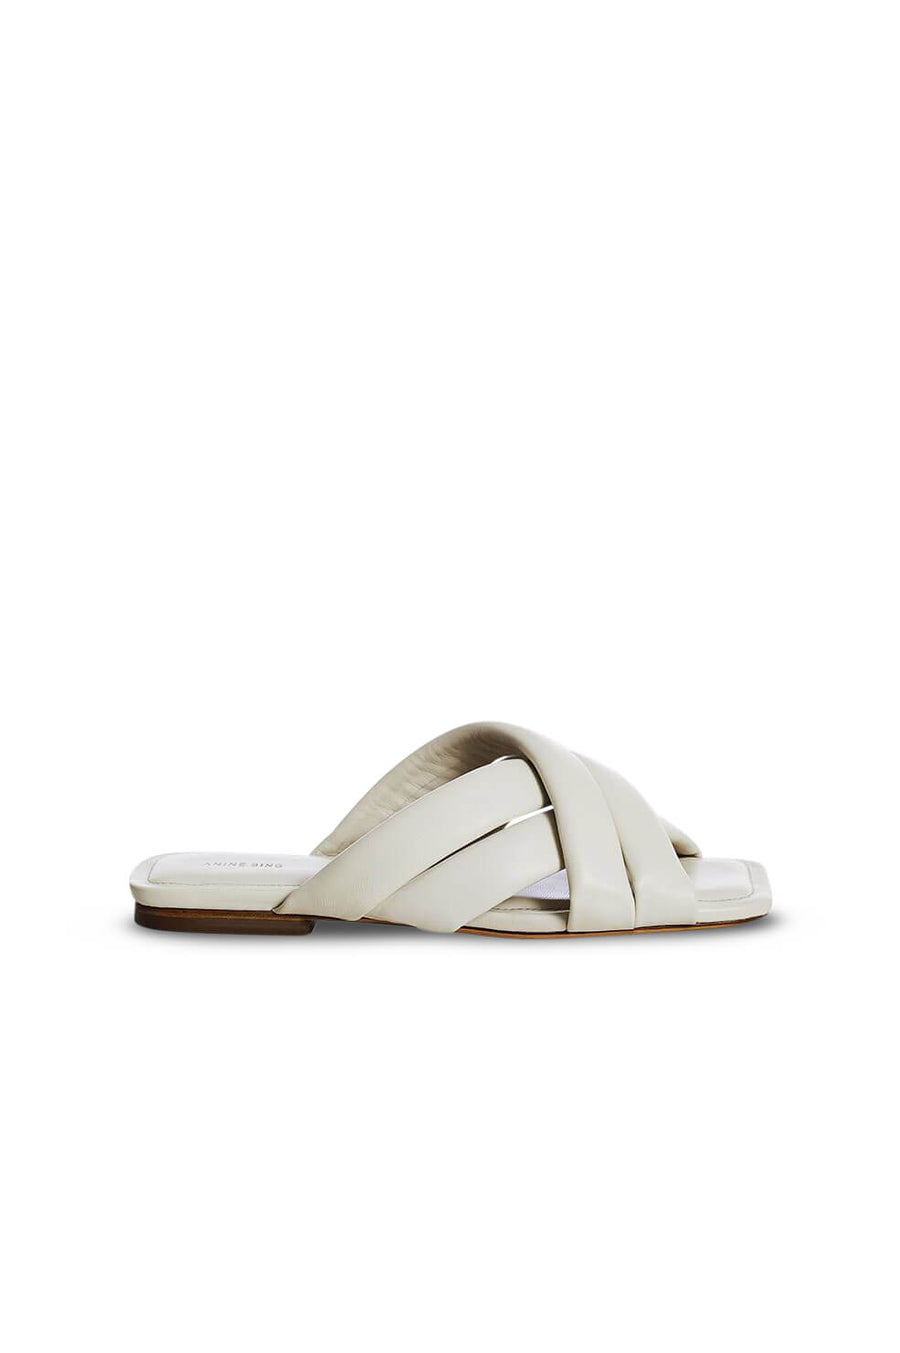 Anine Bing Eve Sandals in Ivory from The New Trend